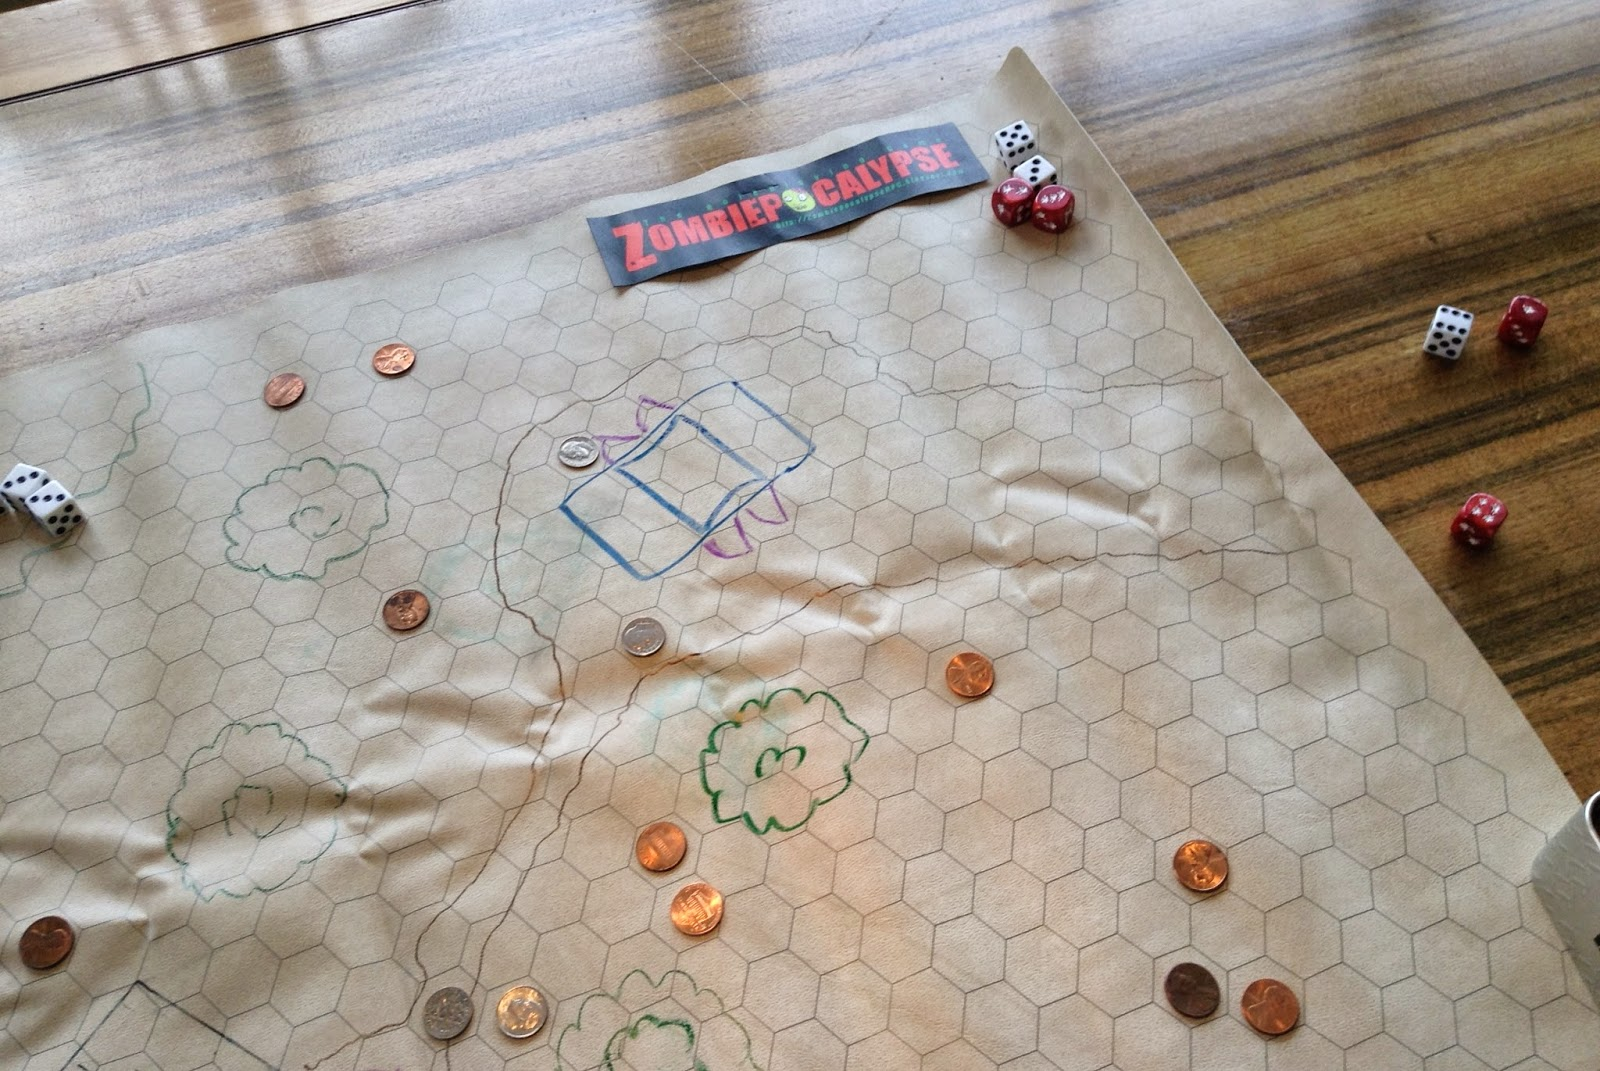 Using coins as tokens on a vinyl mat